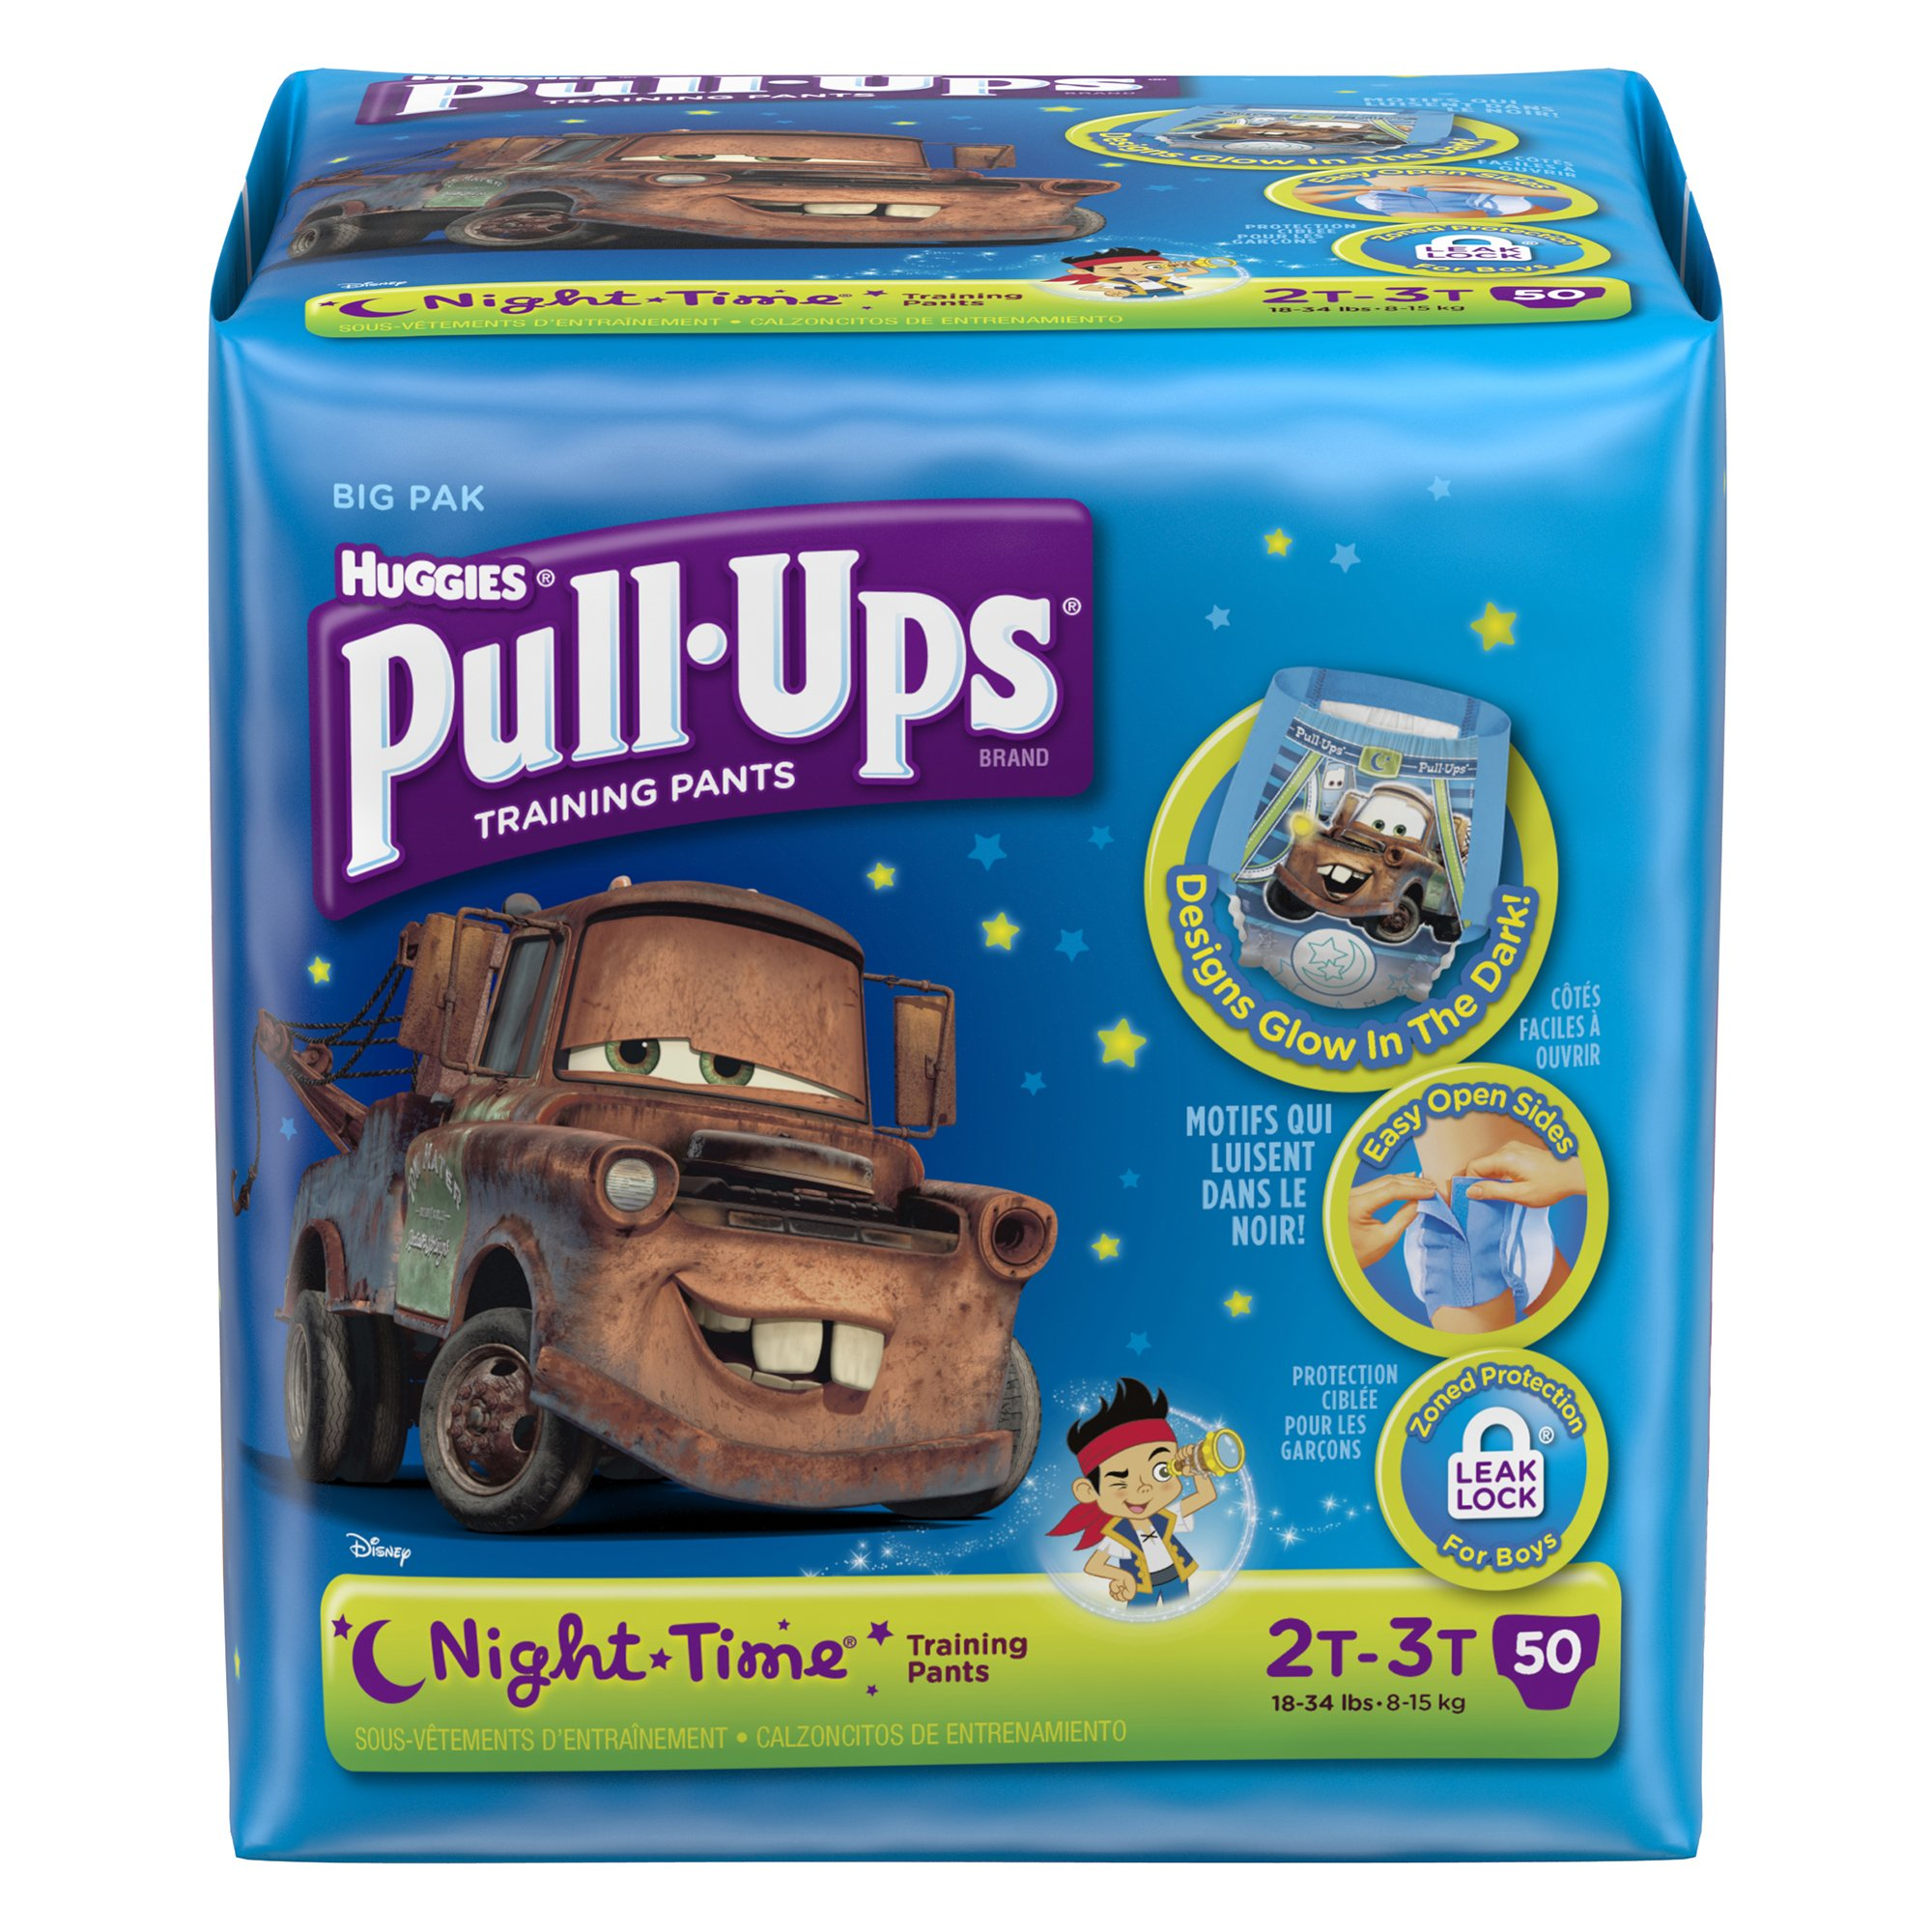 Huggies Pull-Ups Night Time Training Pants for Boys, 2T-3T, 48 Count (Pack of 2)